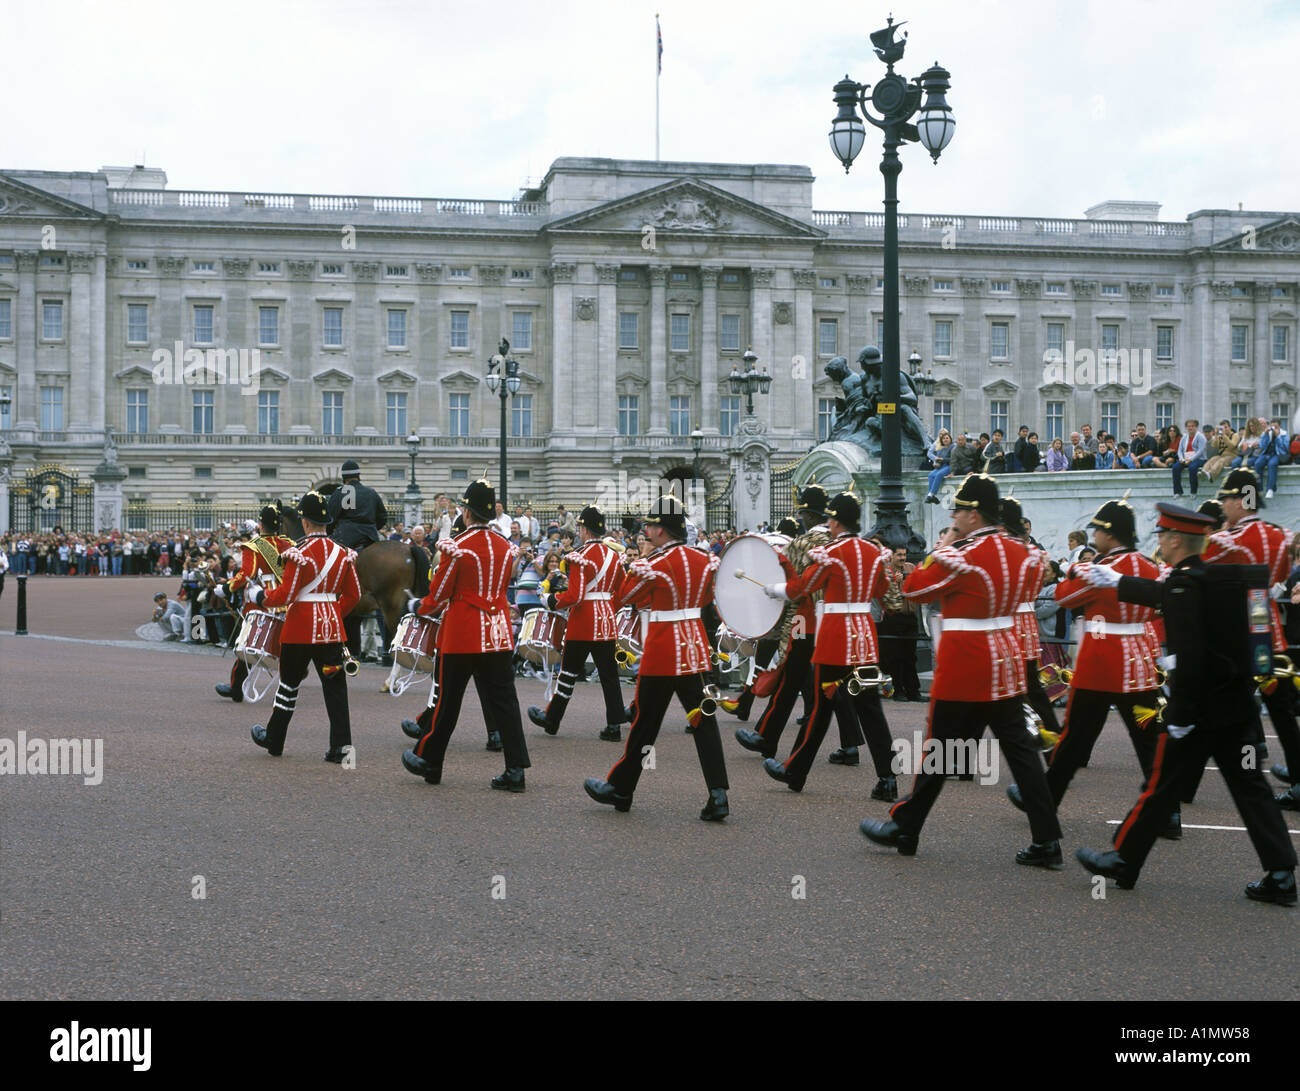 A marching band in front of Buchingham Palace in London England Stock Photo